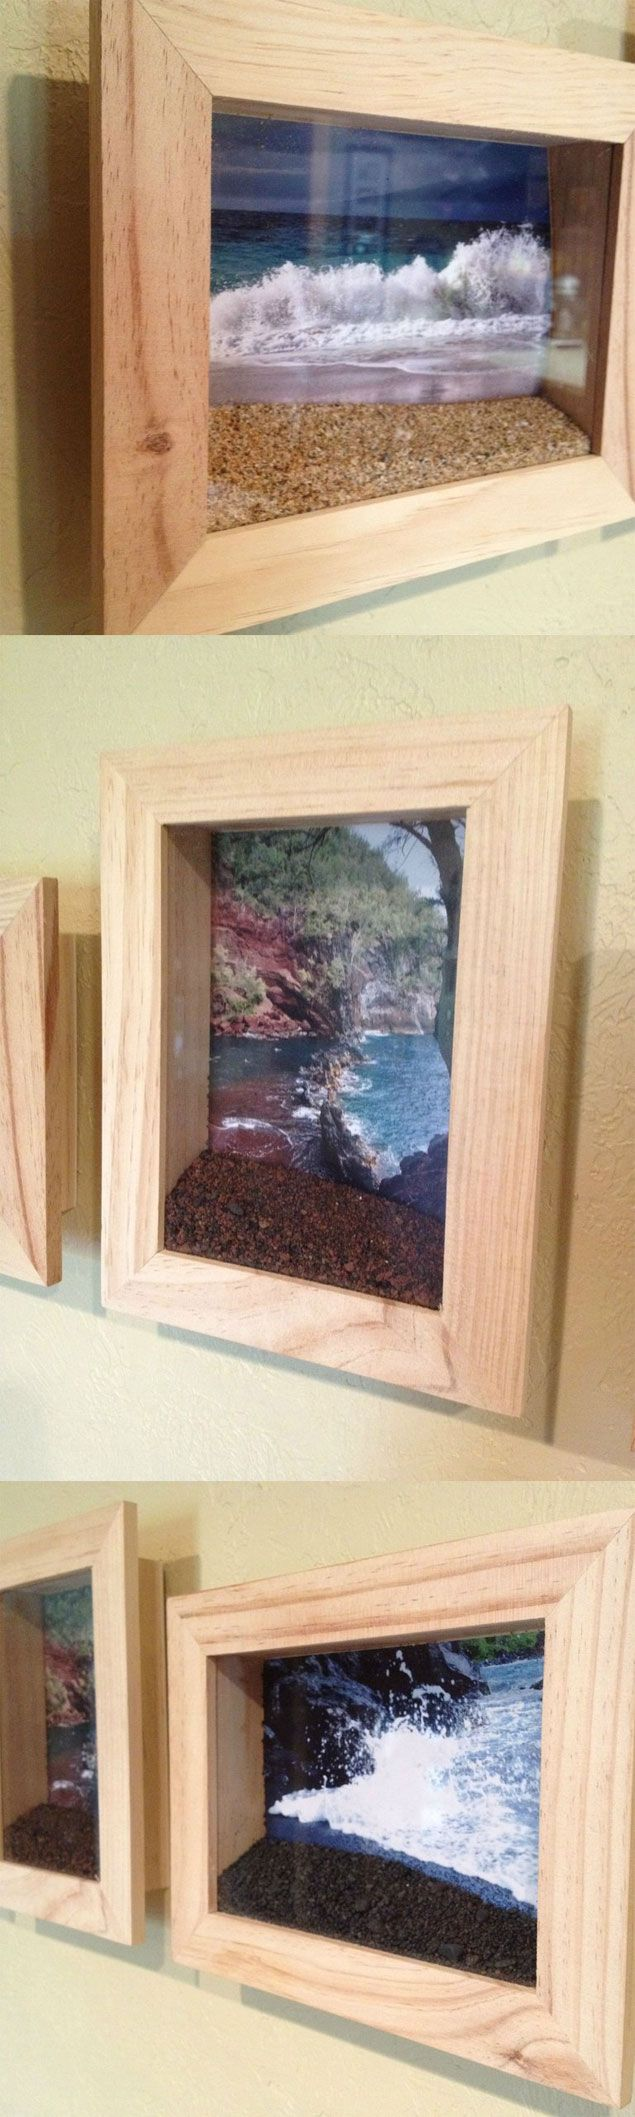 Put a picture of the beach you visited in a shadow box frame and fill the bottom with sand from that beach. @rachel gibs